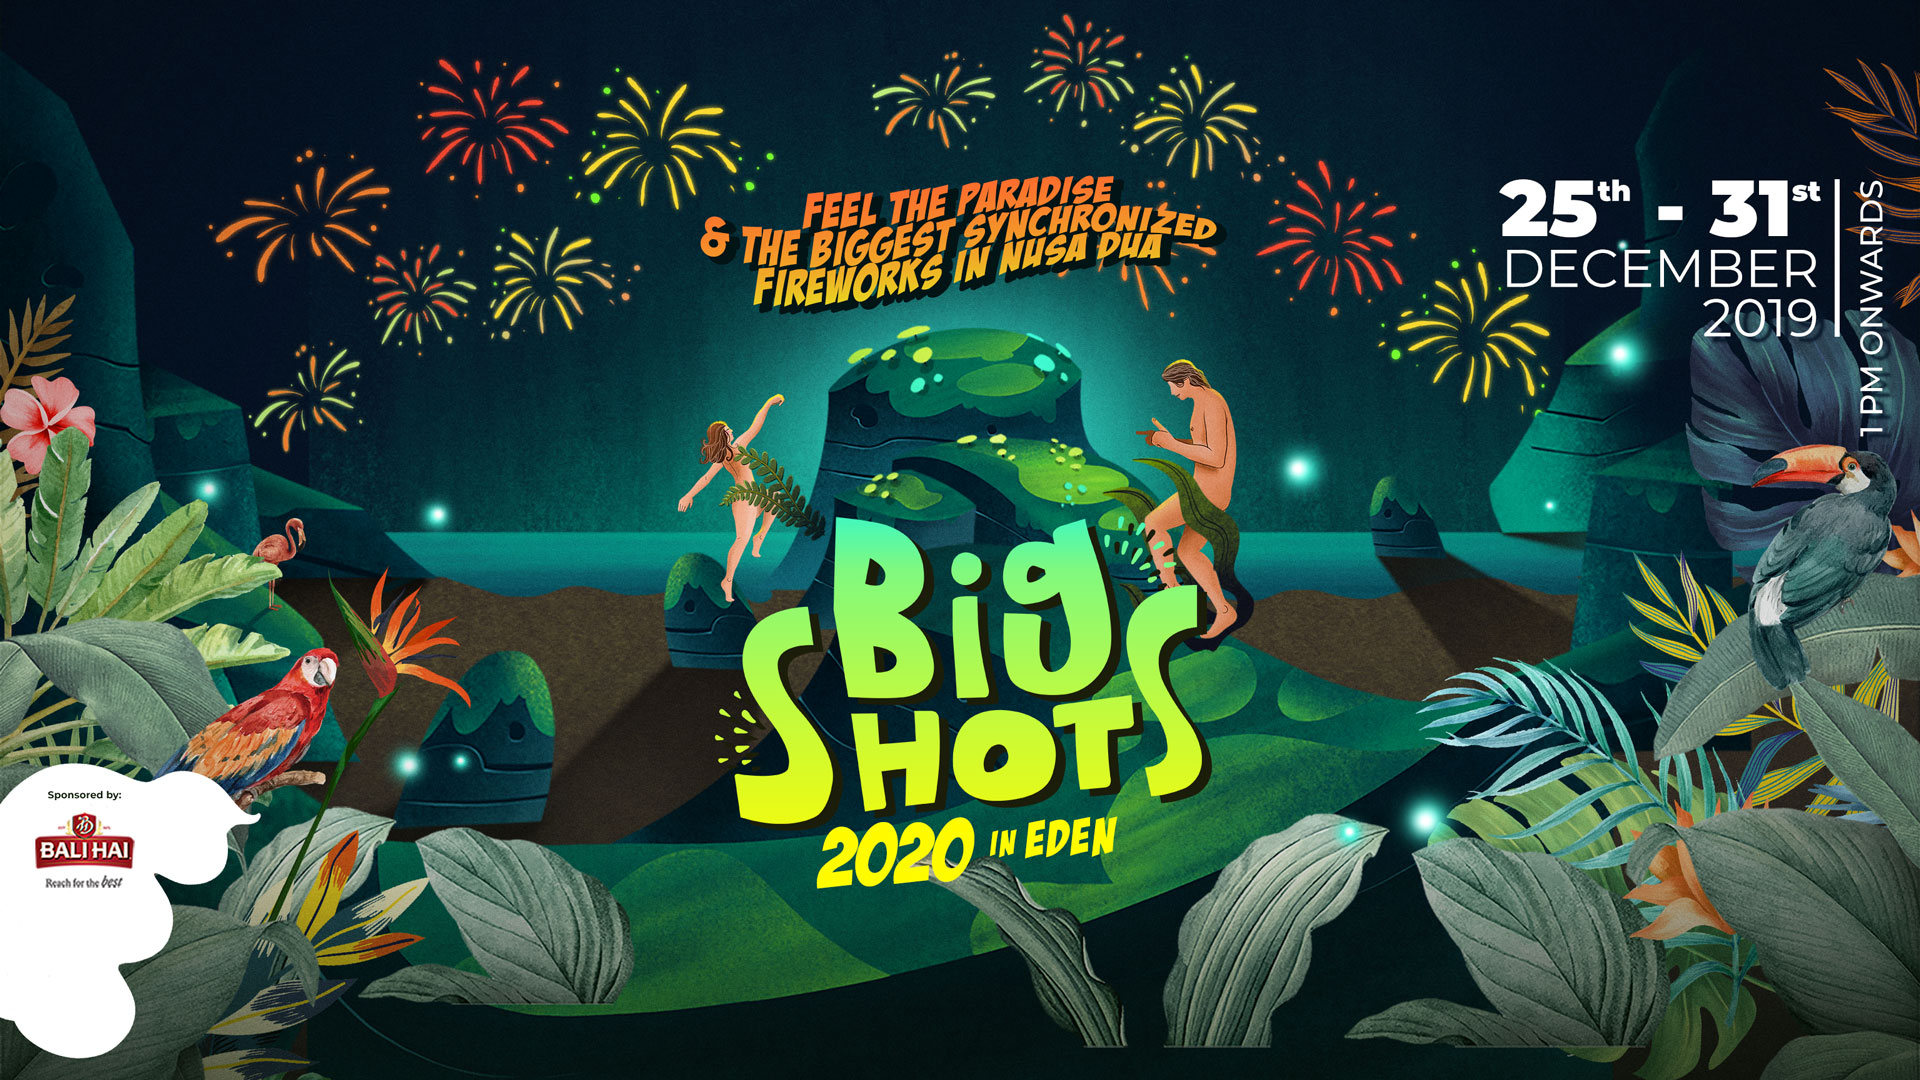 BIG SHOTS 2020 in Eden